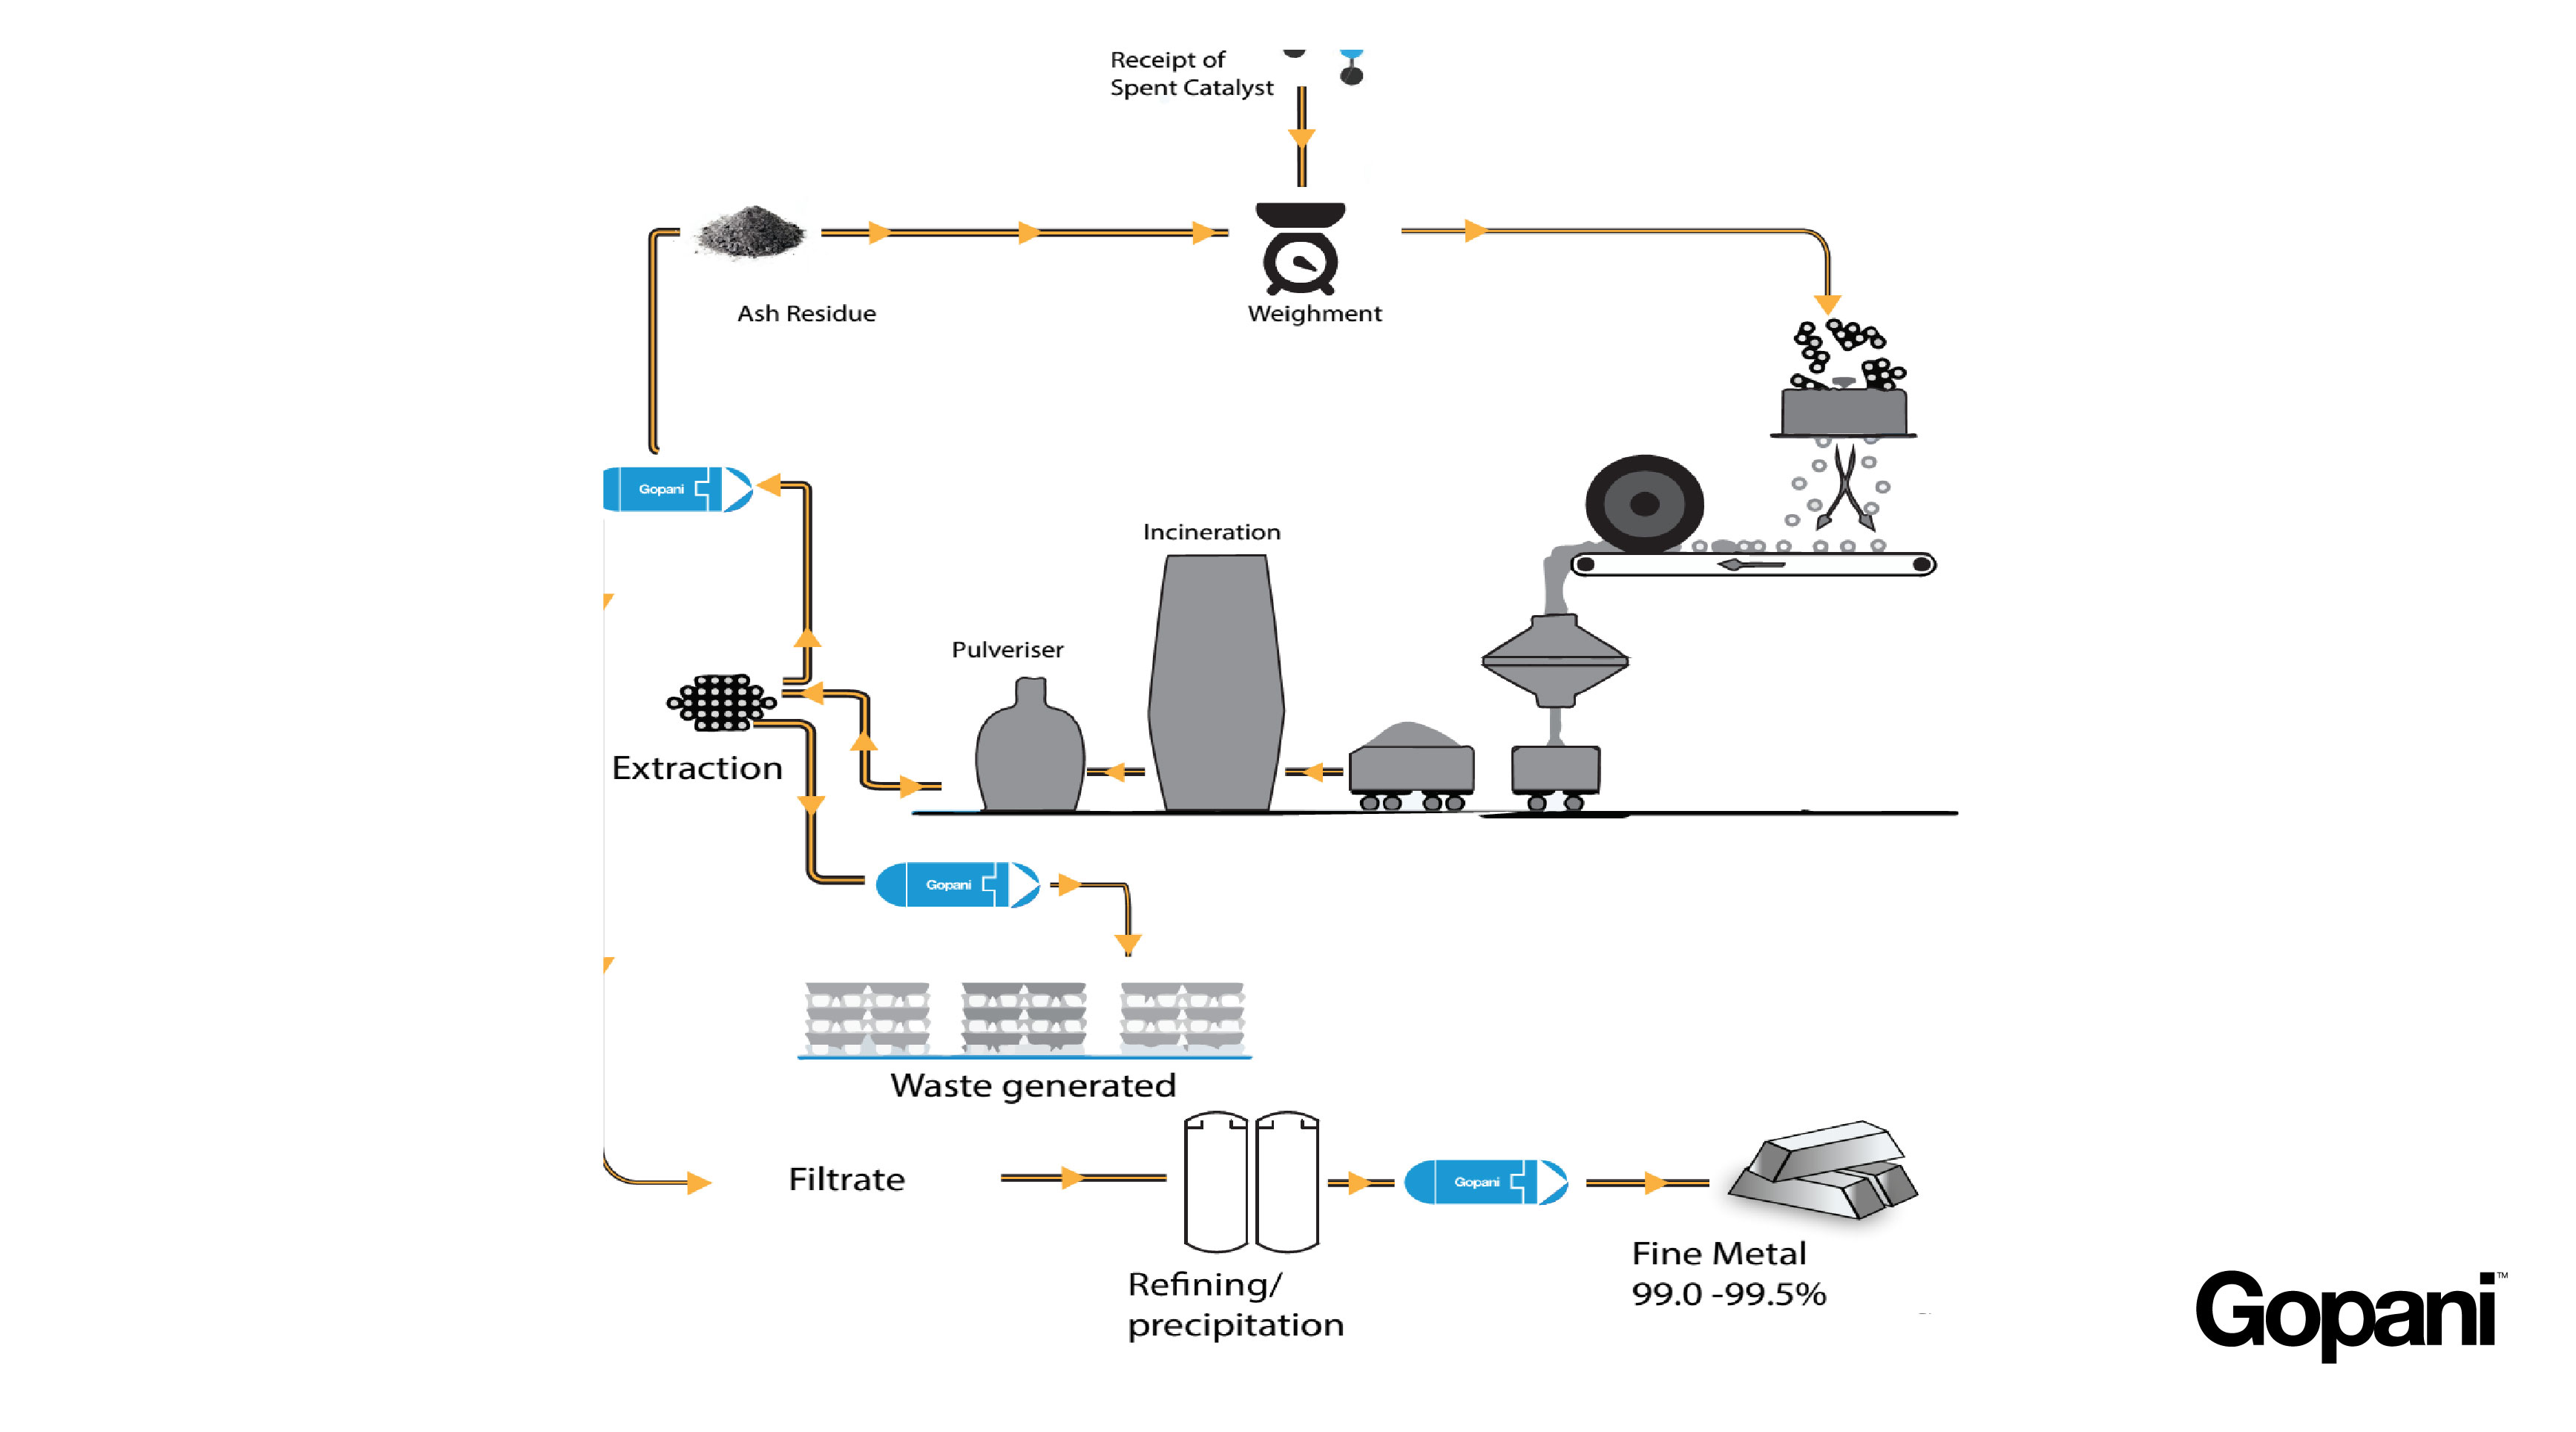 A simplified diagram of Catalyst recovery - Gopani Product Systems